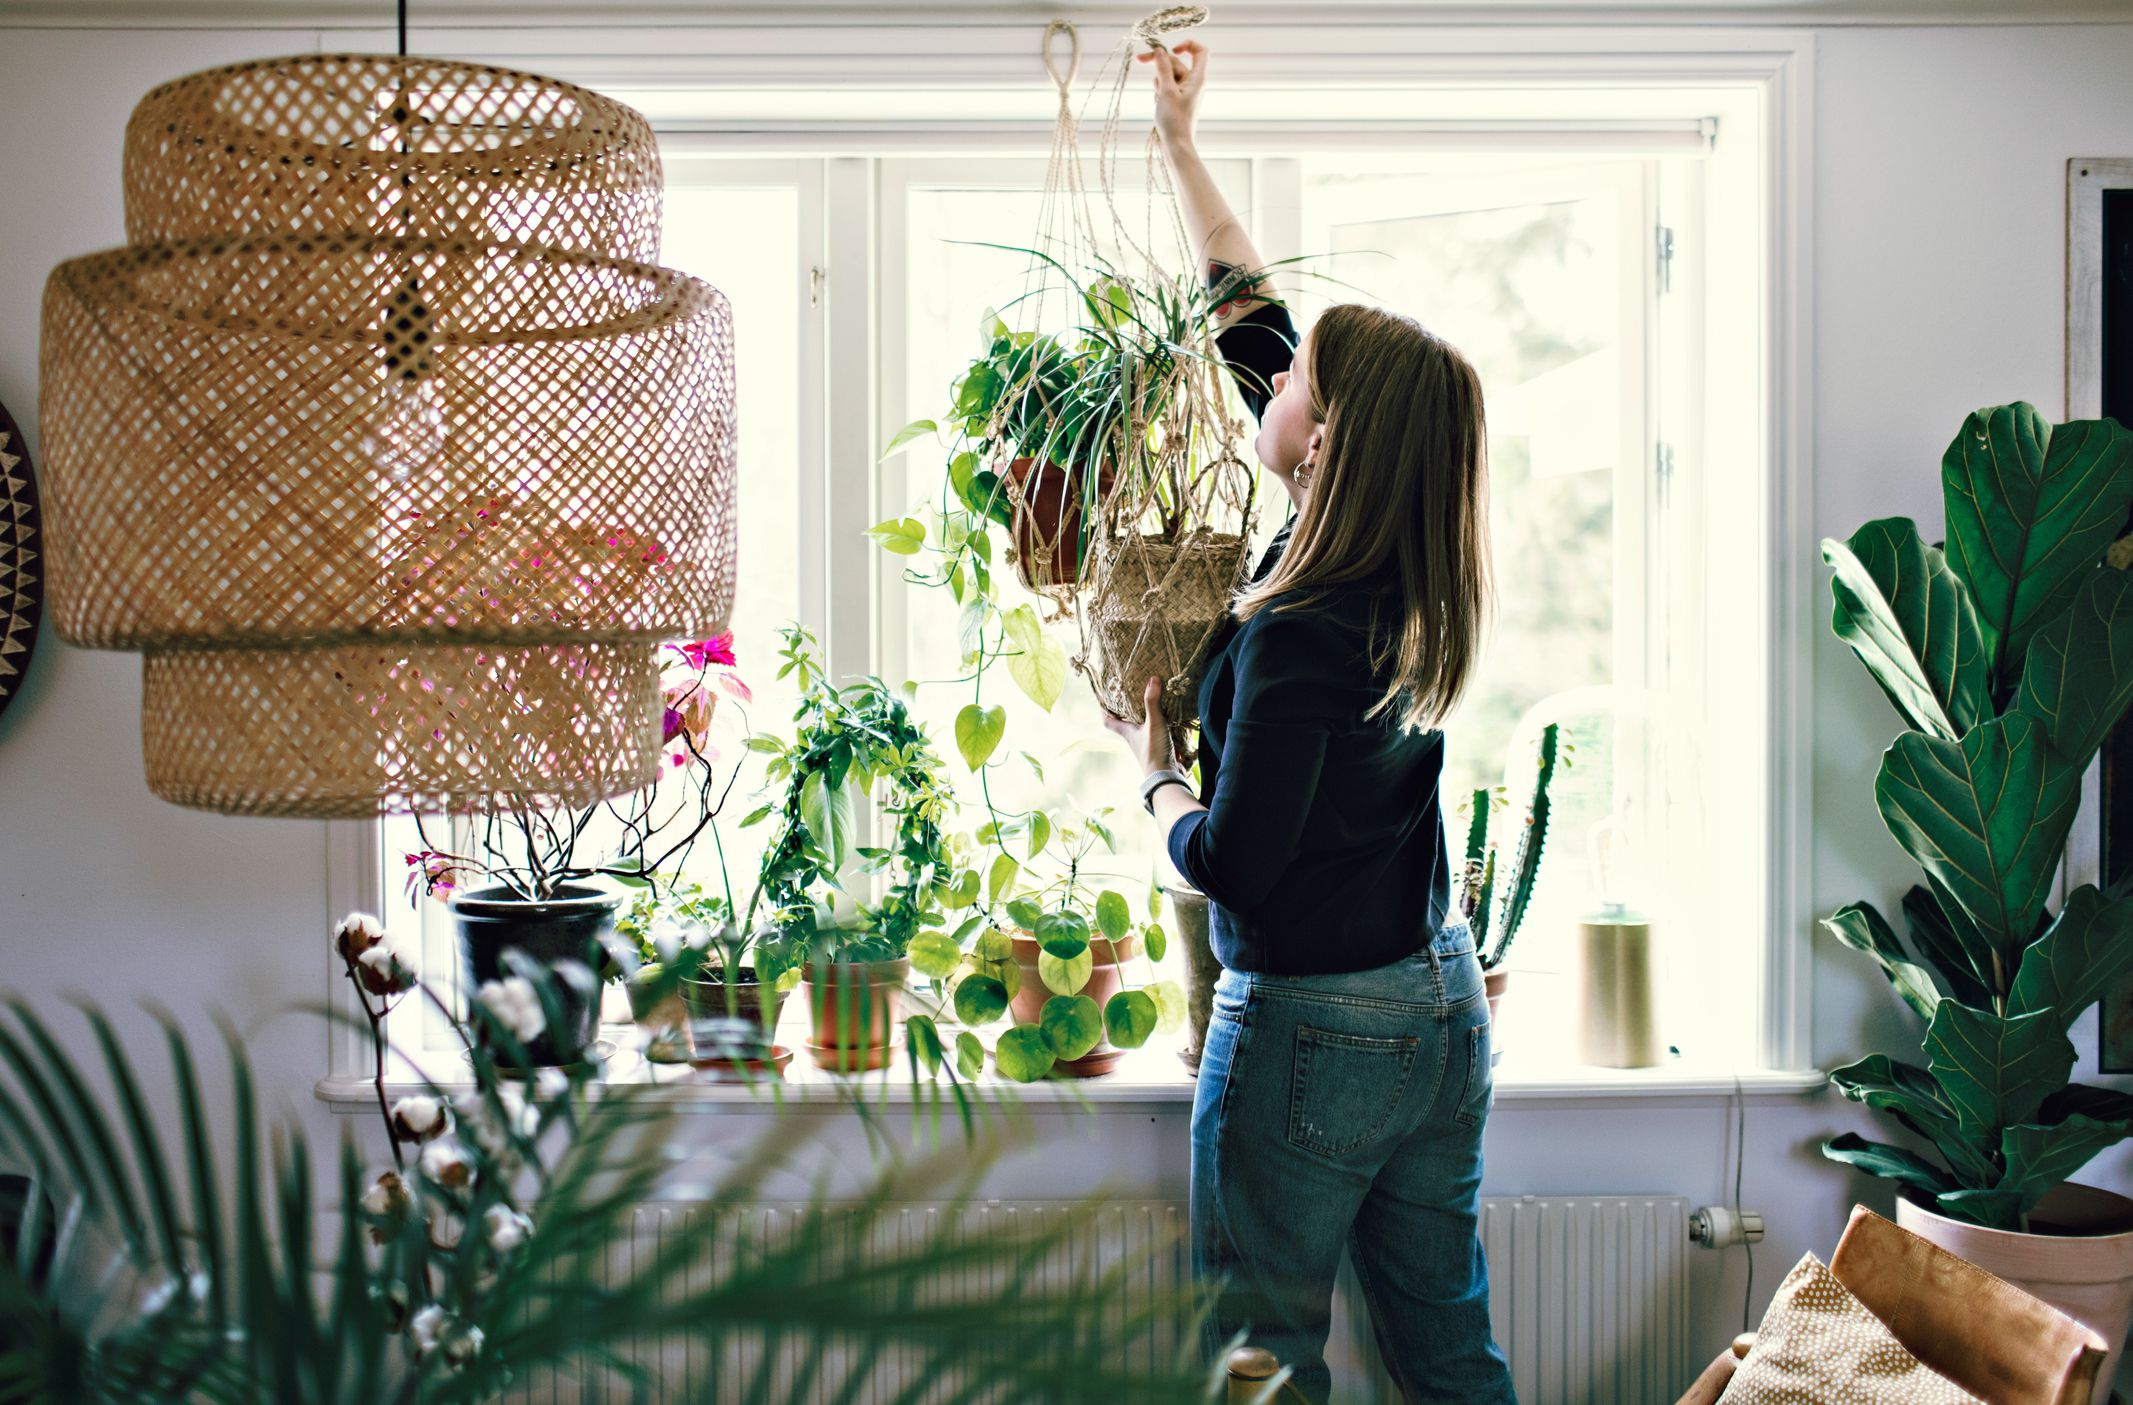 The Best Hanging Baskets for Your Porch, Patio, and Deck